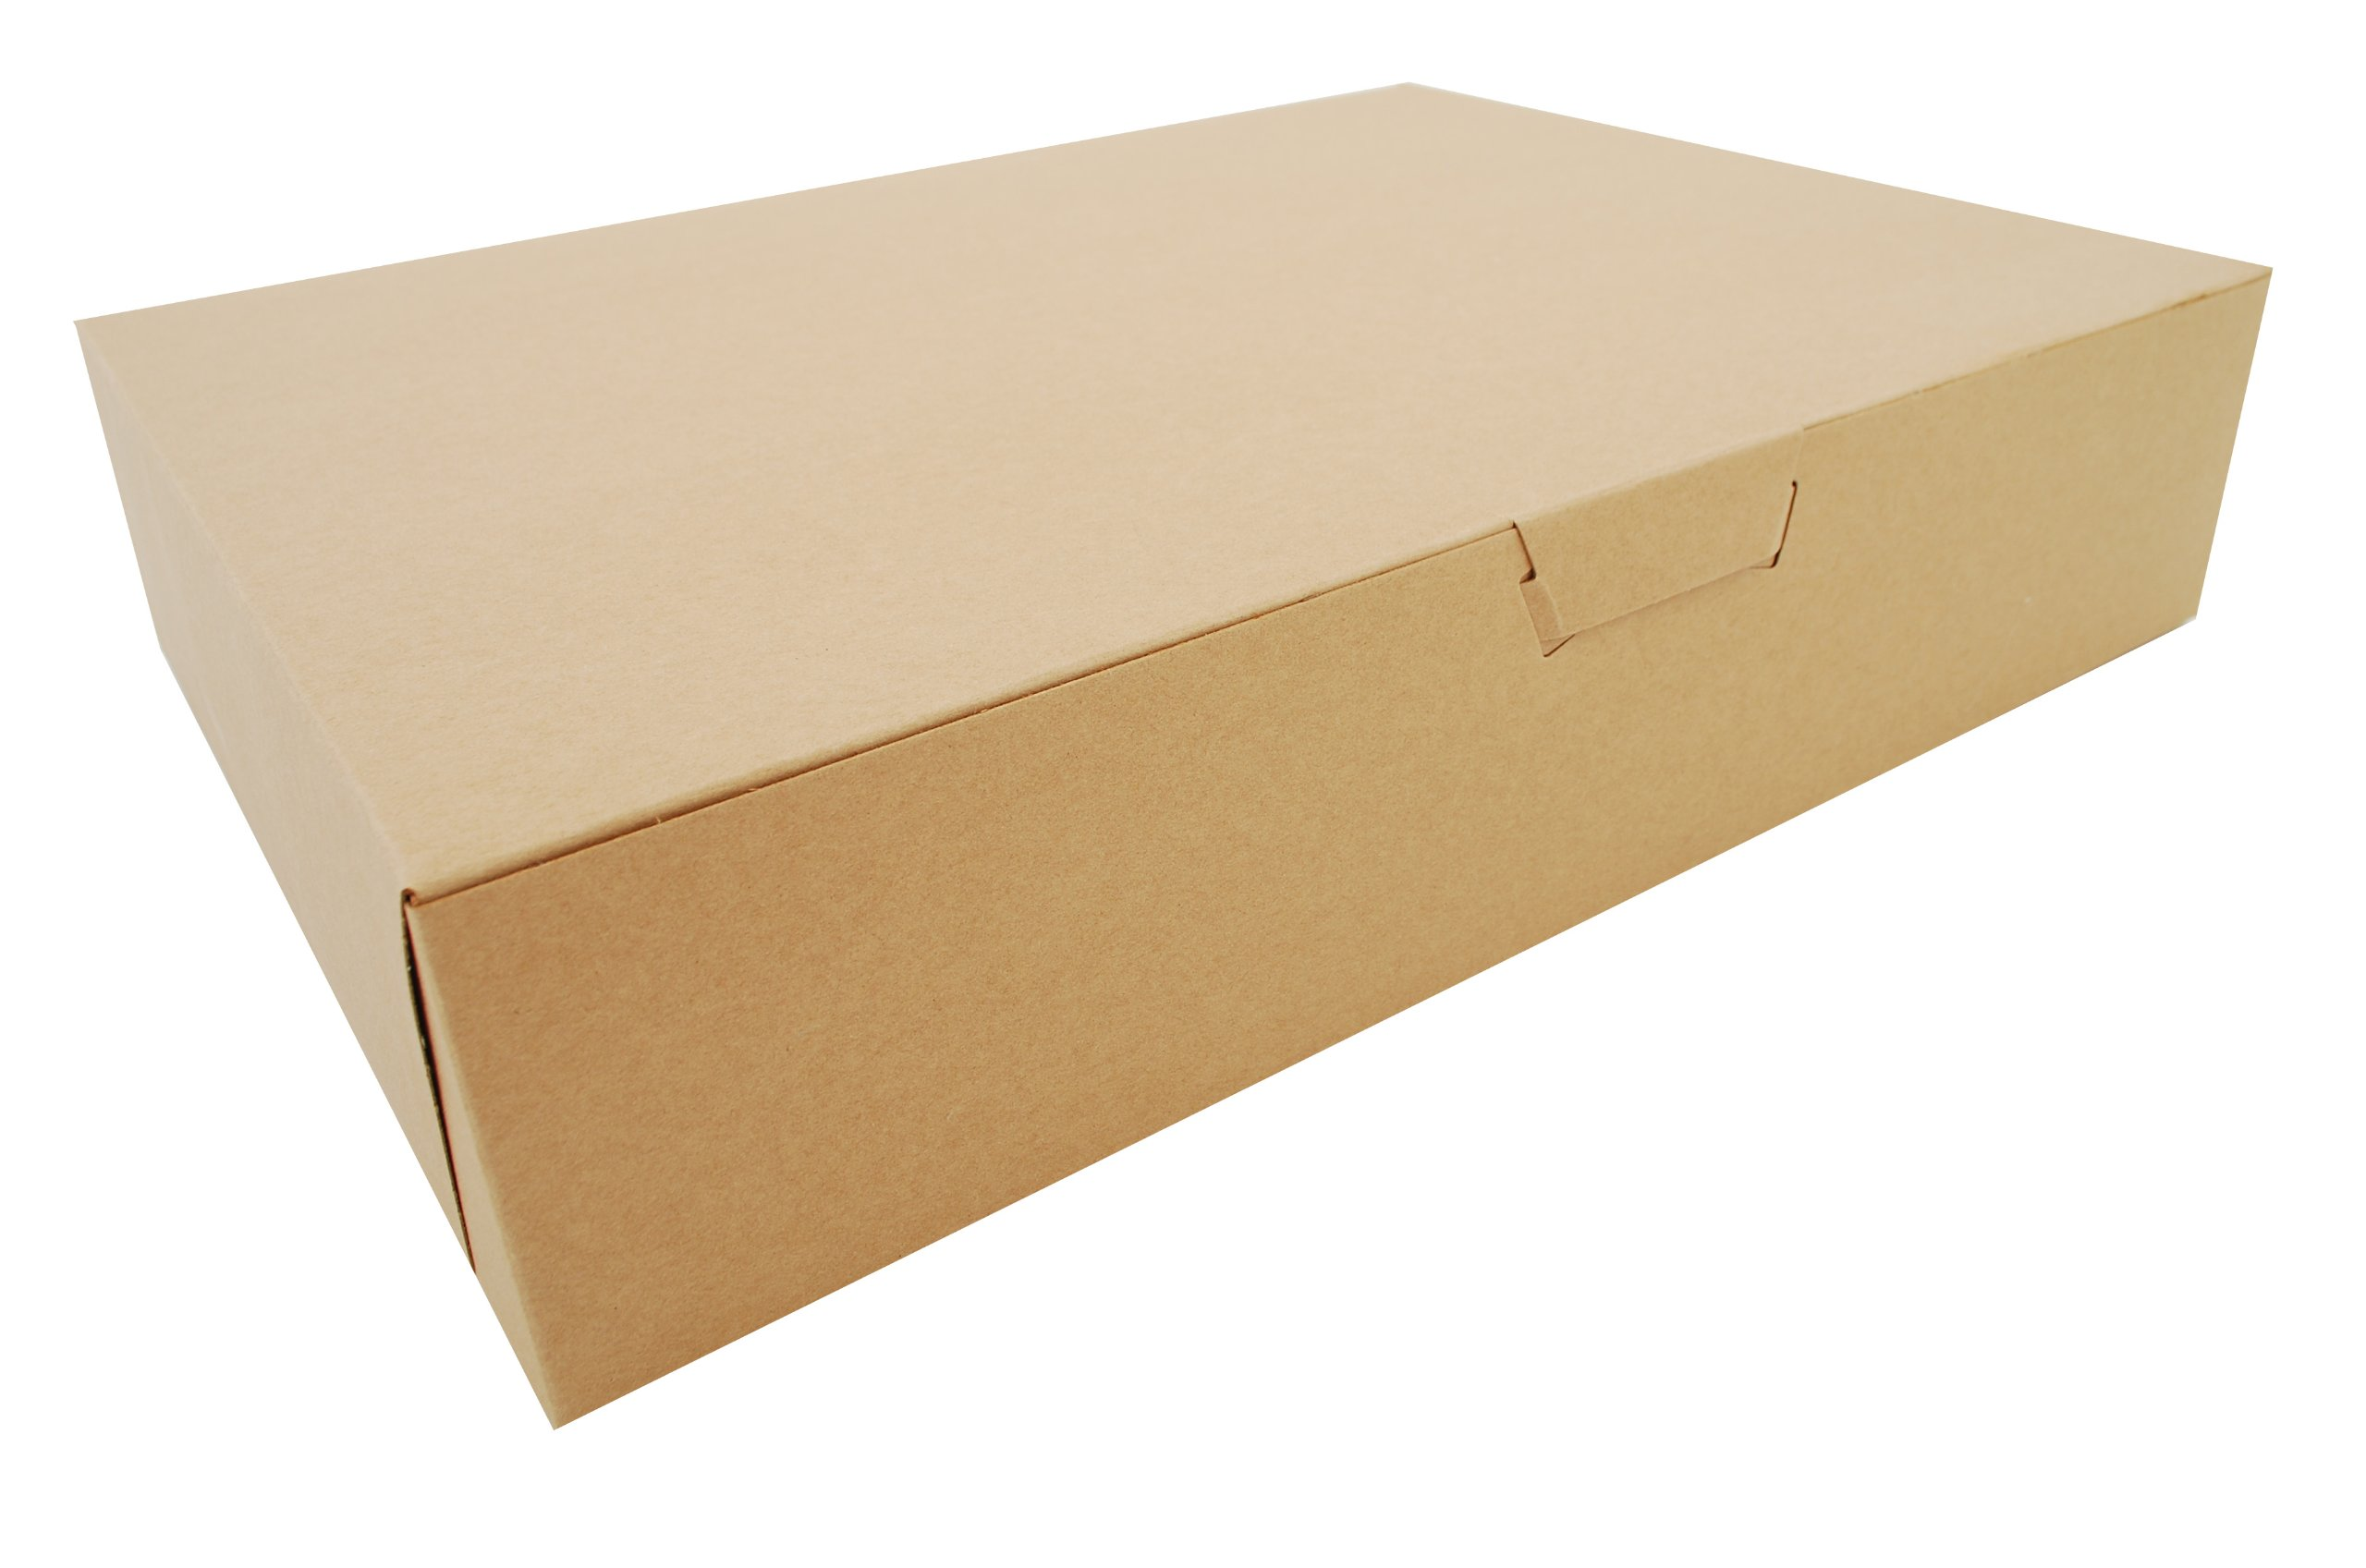 Southern Champion Tray 1029K Kraft Non Window Bakery Box, 19'' Length x 14'' Width x 4'' Height (Case of 50) by Southern Champion Tray